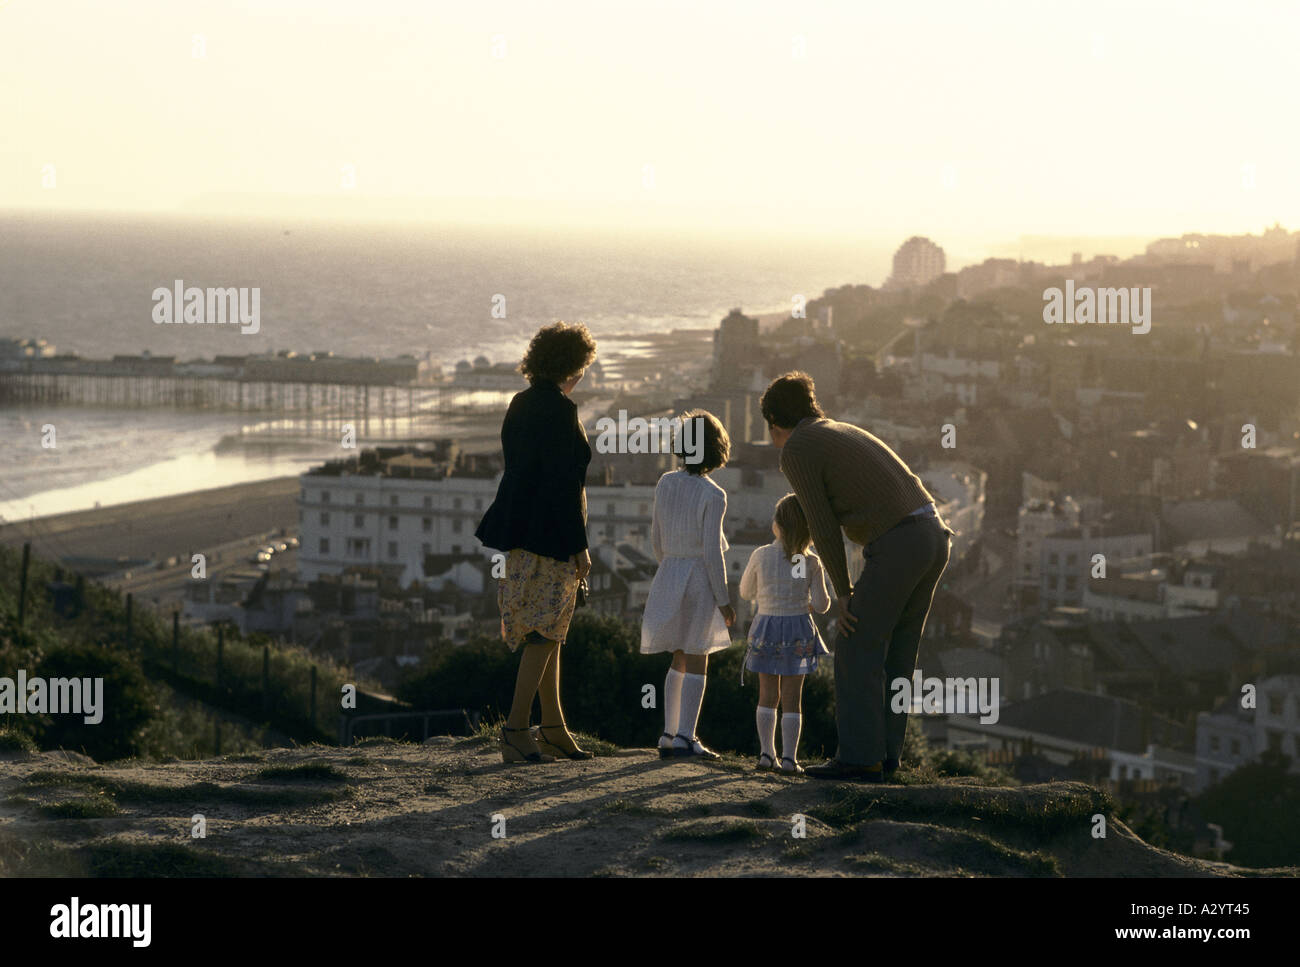 family on hill overlooking seaside town at sunset - Stock Image